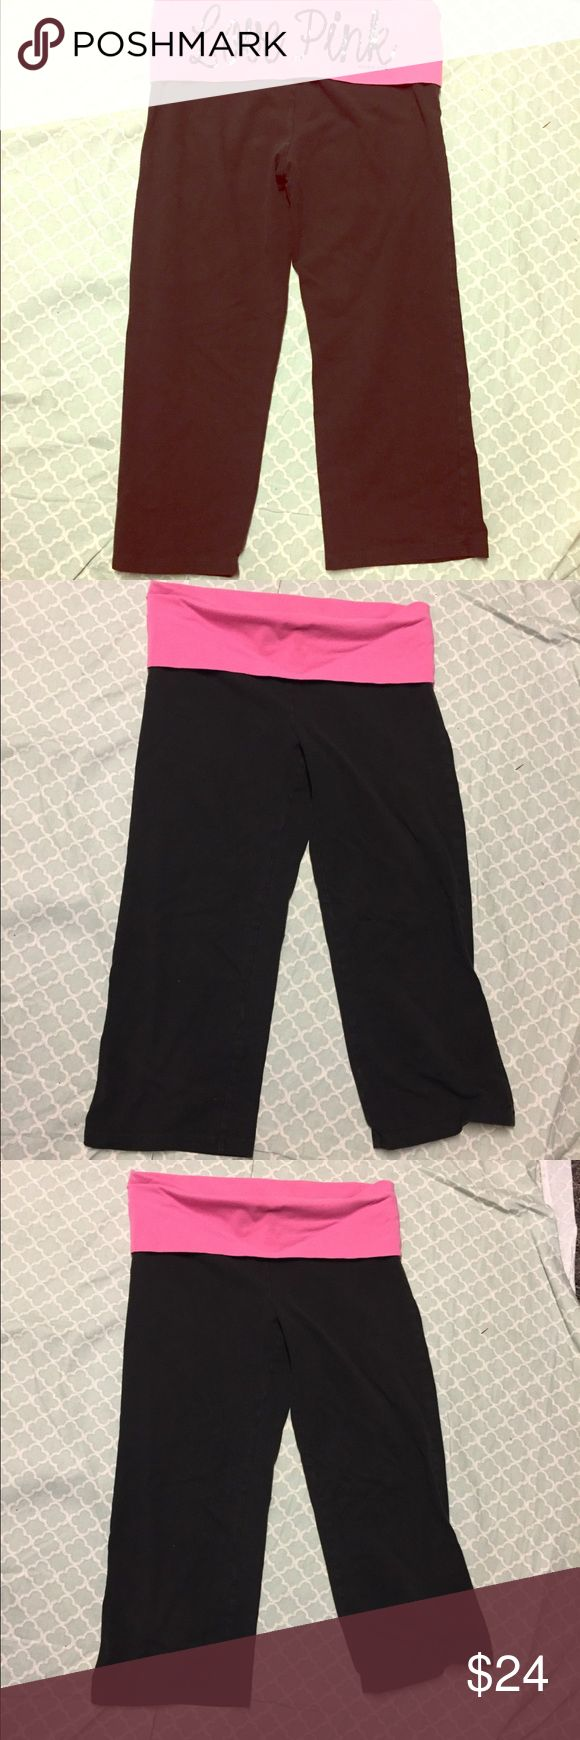 """VS PINK SZ Small Black """"LOVE PINK"""" Capri Pants EUC VS PINK SZ Small Black """"LOVE PINK"""" Capri Pants EUC. Very cute Capris in great condition. Back of waistband has """"Love Pink"""" in black cursive sequins. Inseam is 18"""" size Small. PINK Victoria's Secret Pants Capris"""